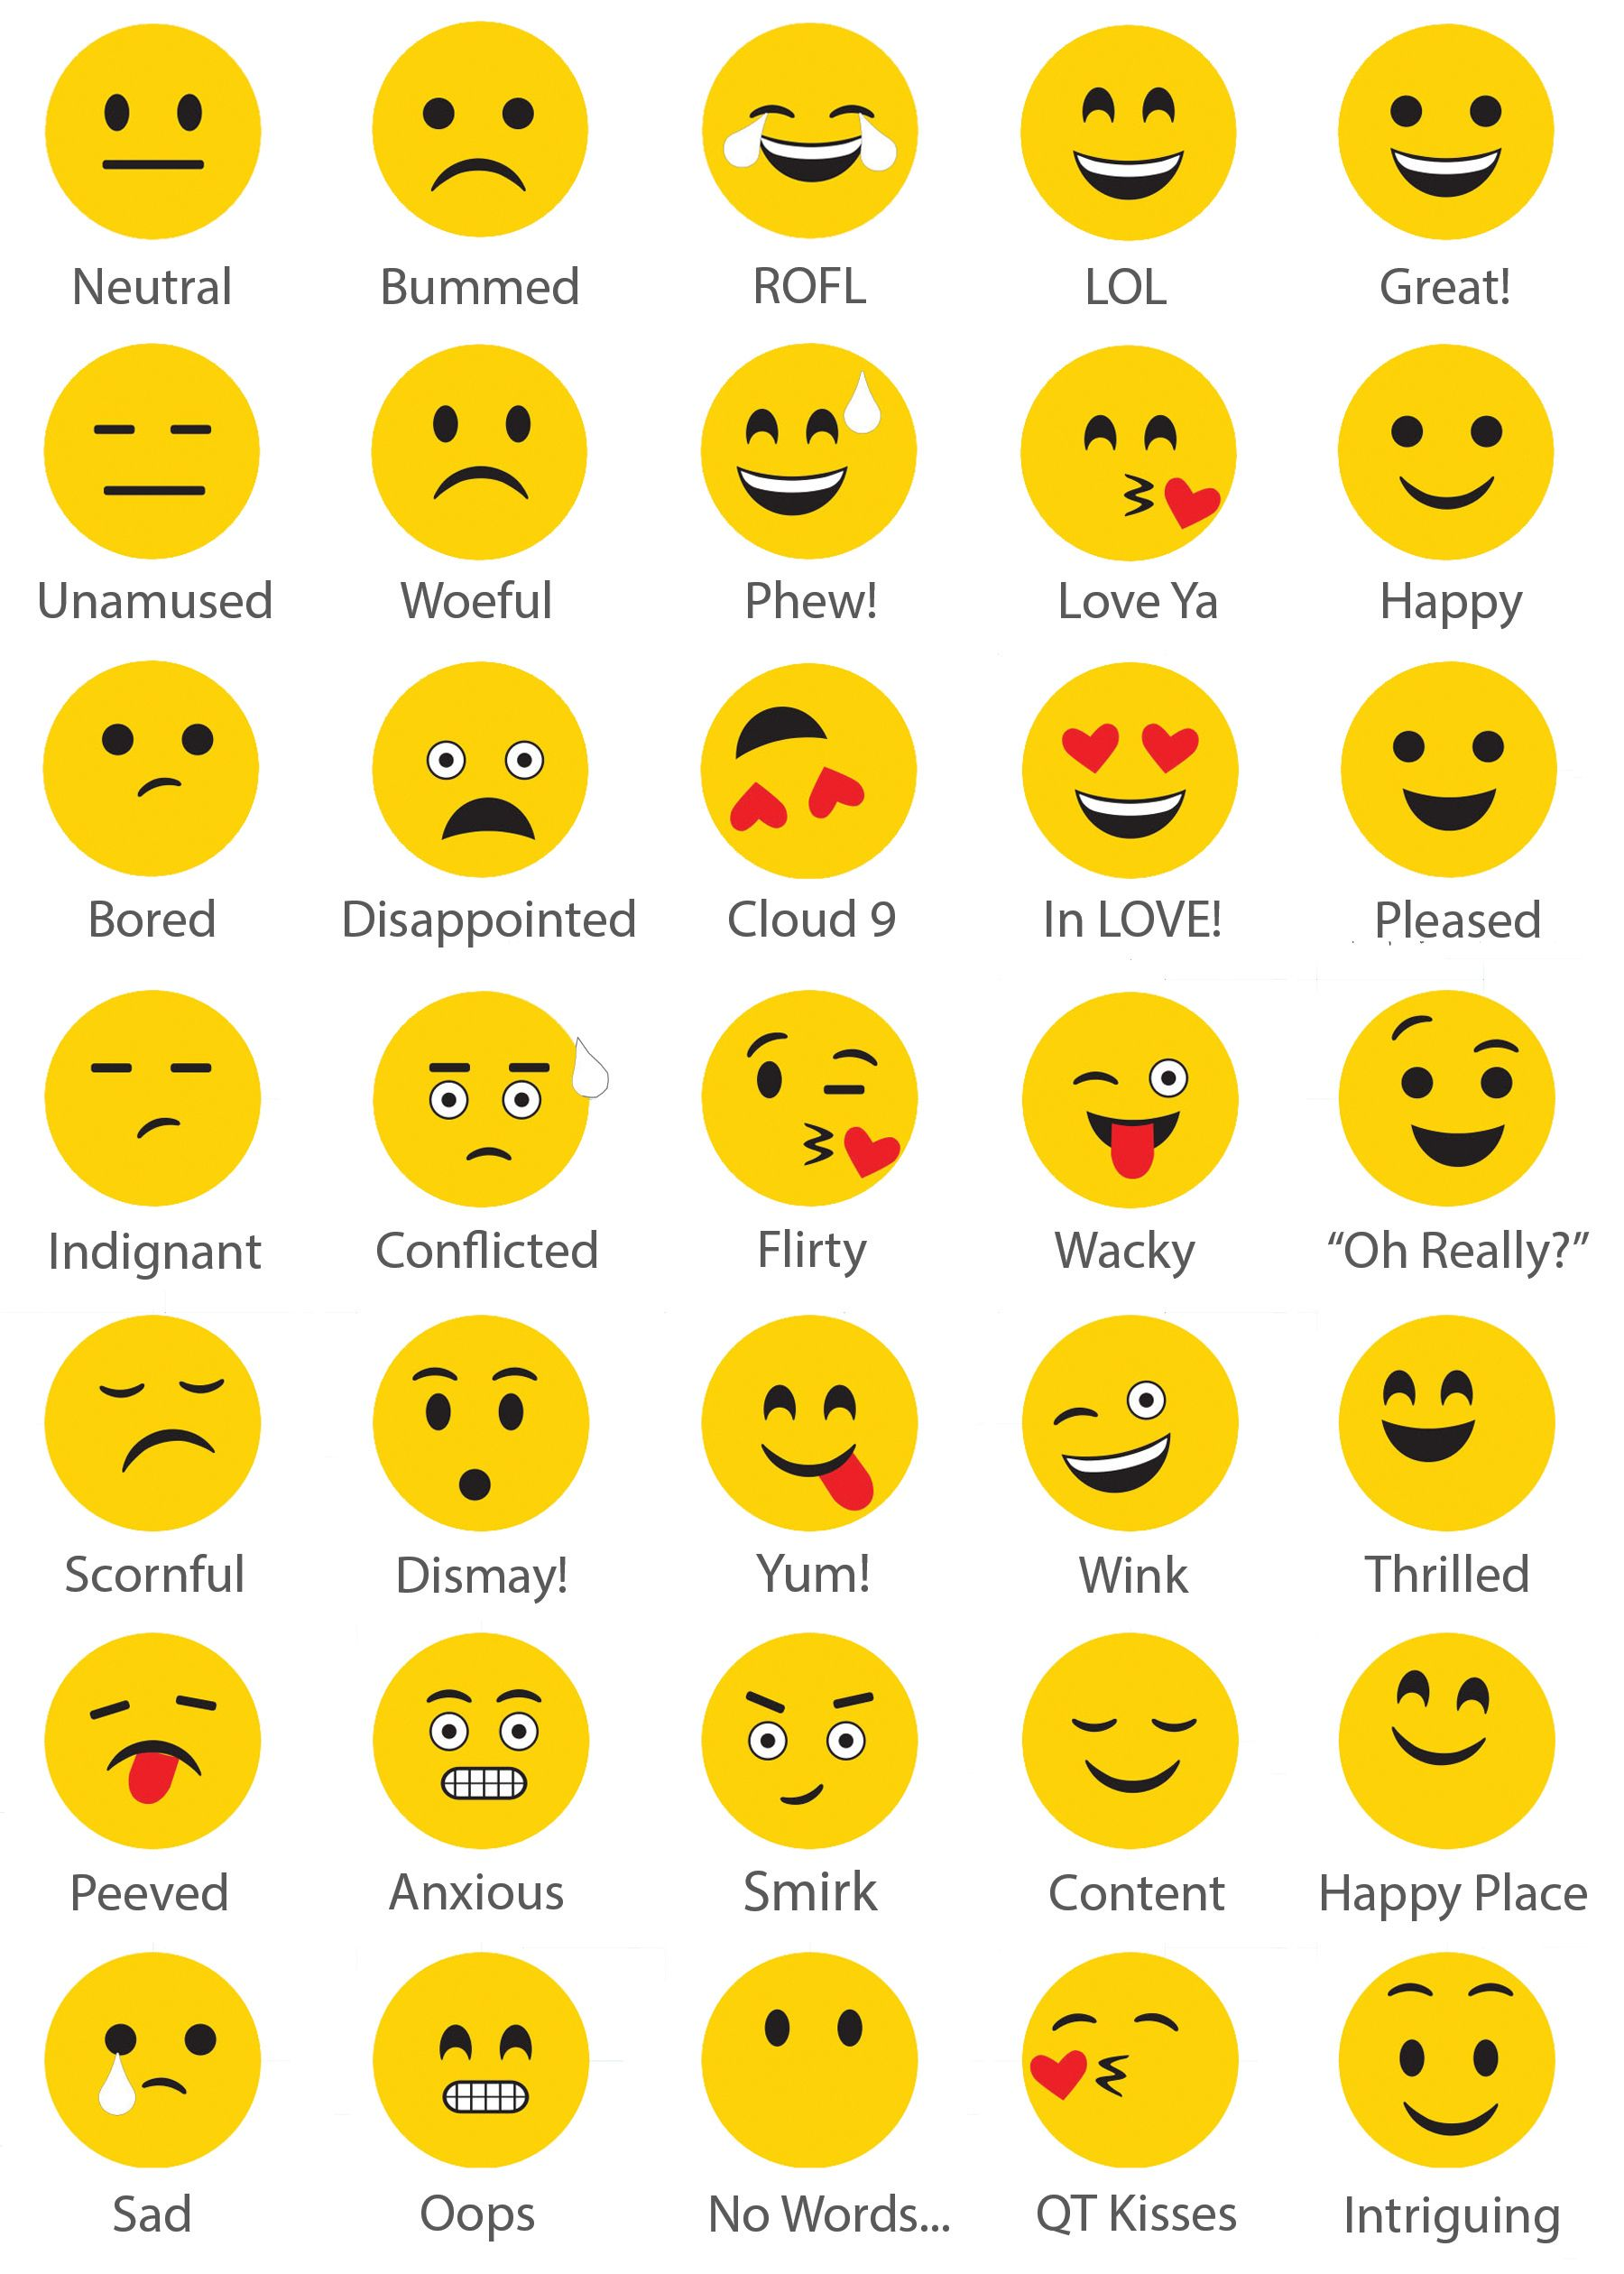 Make your own dry-erase emoji decal! | Studying & Ed | Pinterest ...